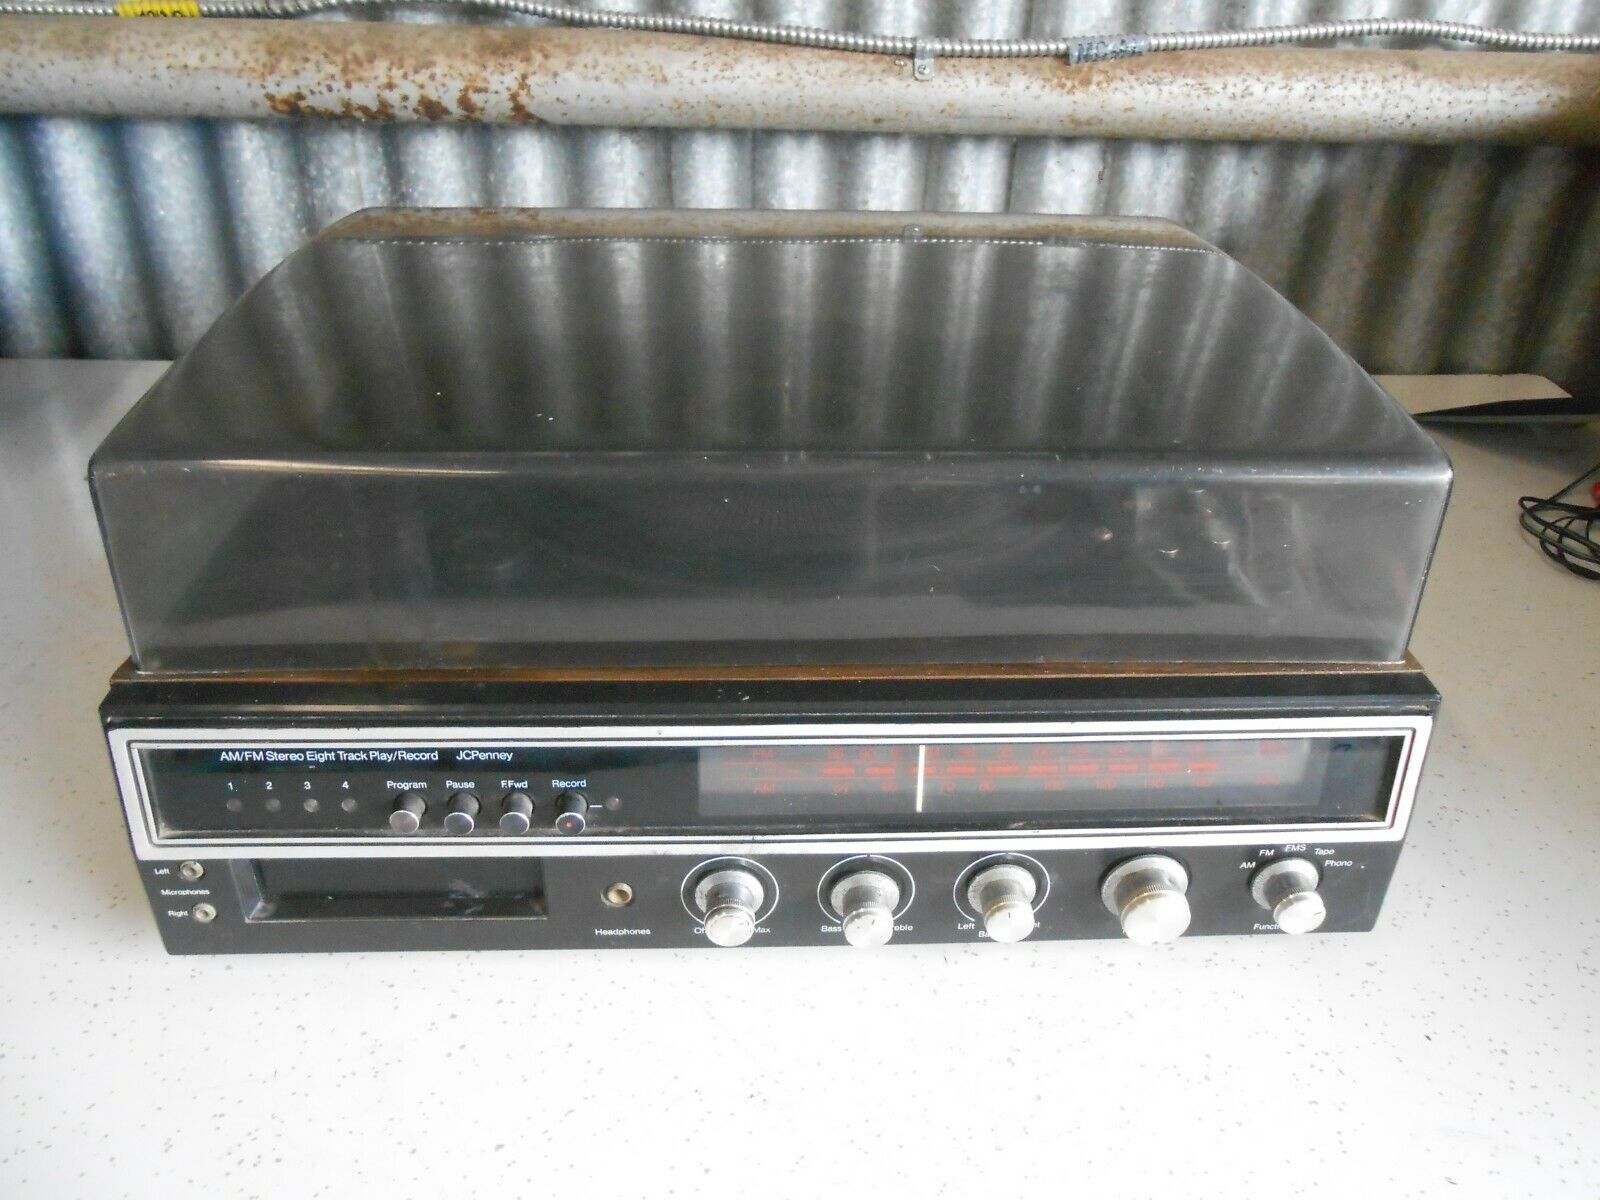 Vintage JC Penney 683-1741 AM/FM Stereo 8 Track Player/Recorder Turntable Works - $19.99